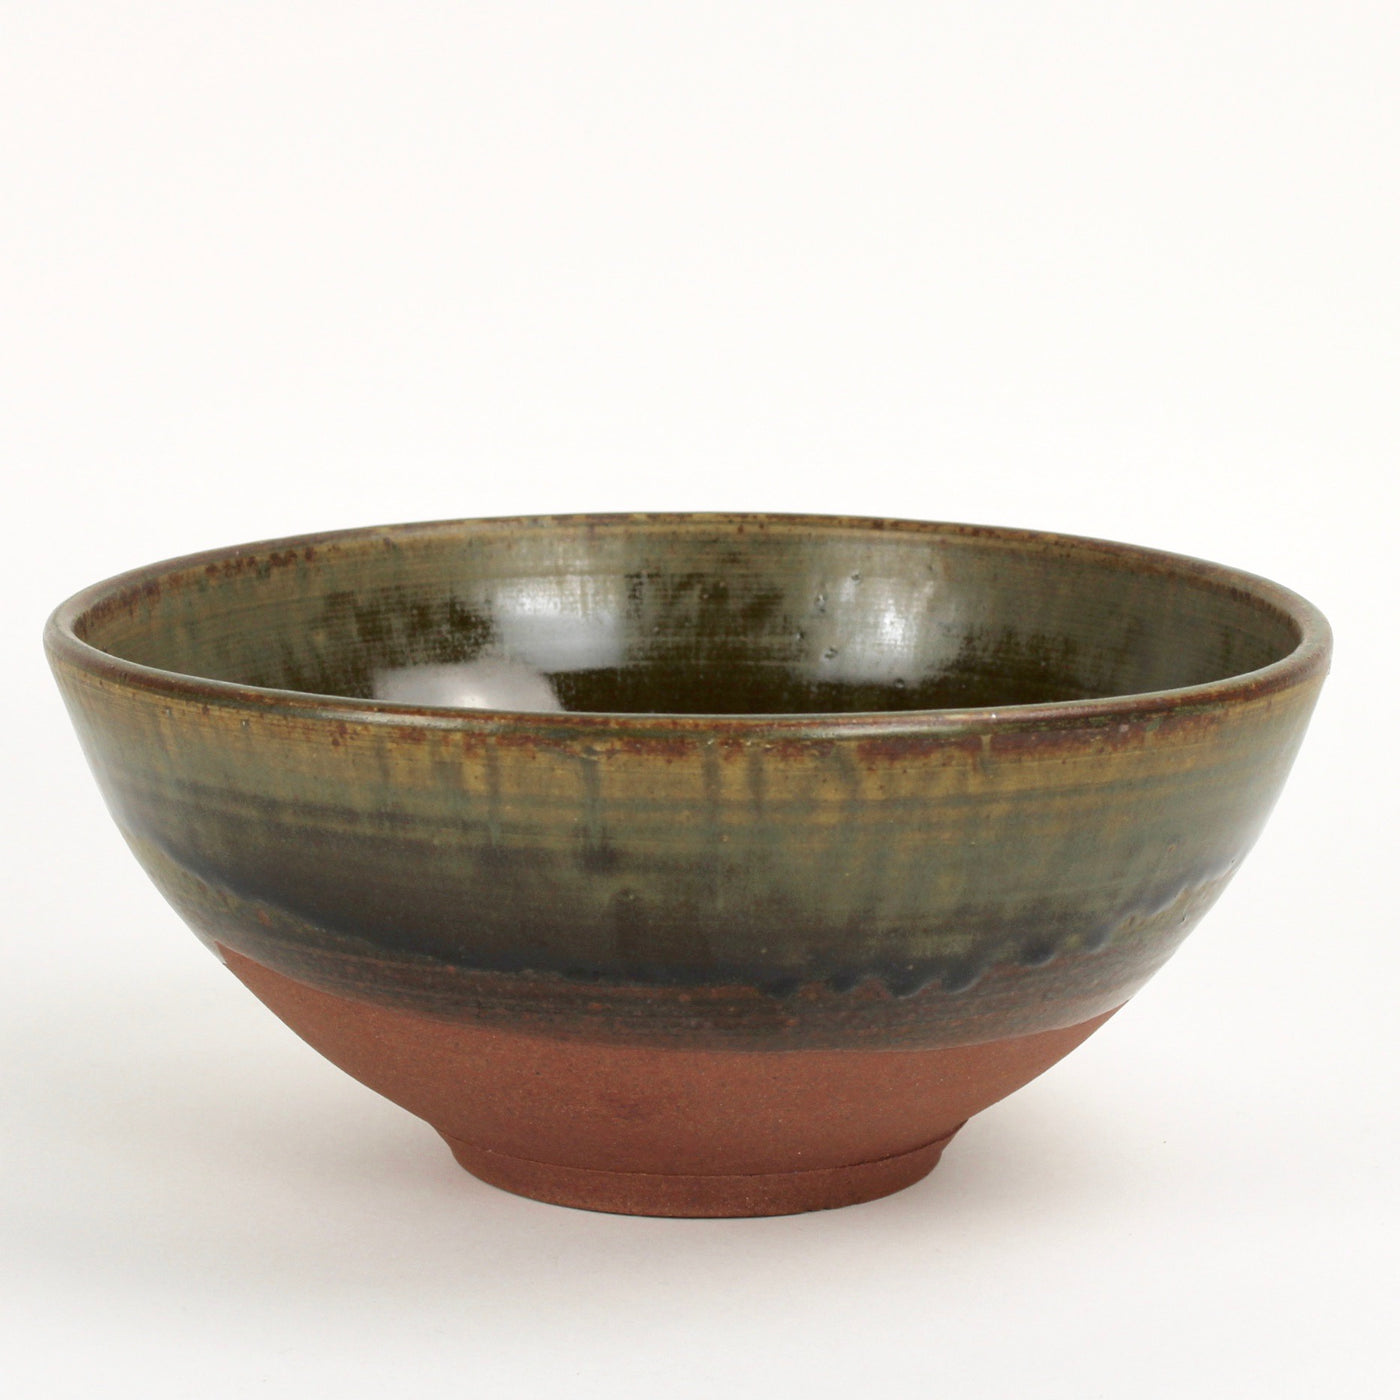 Large upright bowl